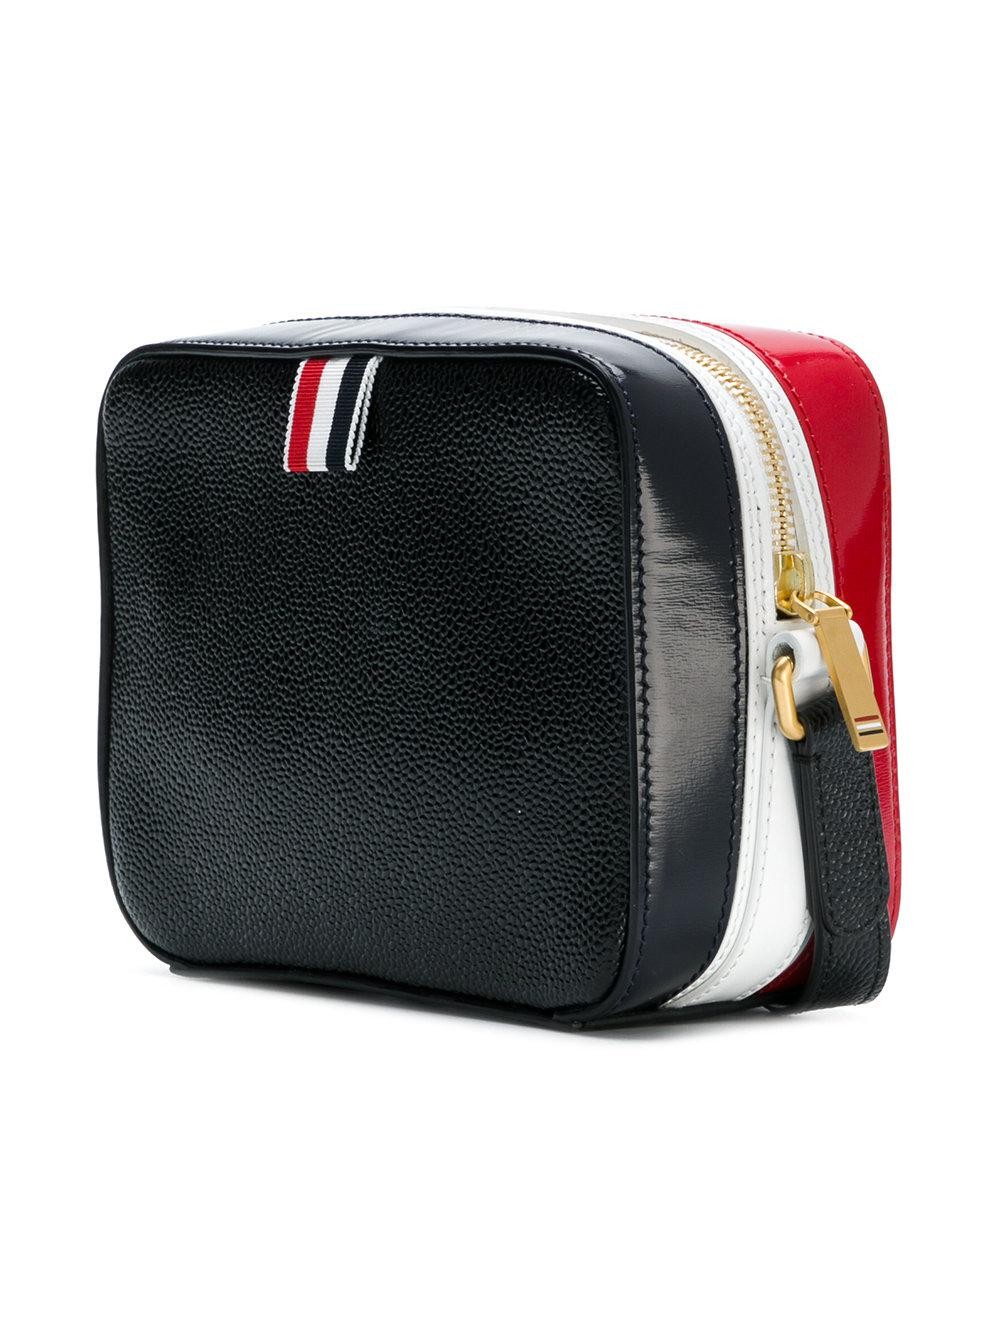 Business Bag Mini (17x13x7,5 Cm) With Cross Body Strap In Pebble Lucido Leather & Calf Leather - Black Thom Browne